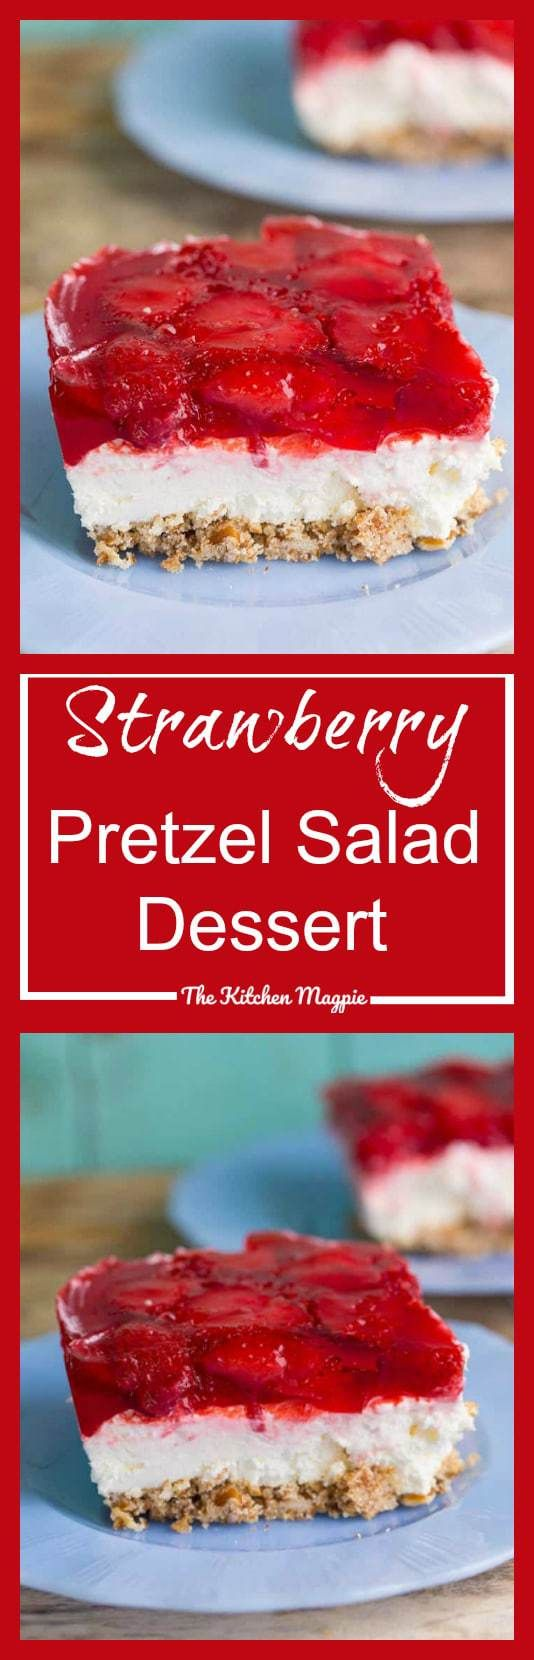 This strawberry pretzel salad (or strawberry pretzel dessert) is a retro party favourite! Make this for your next party, your guests will love it!